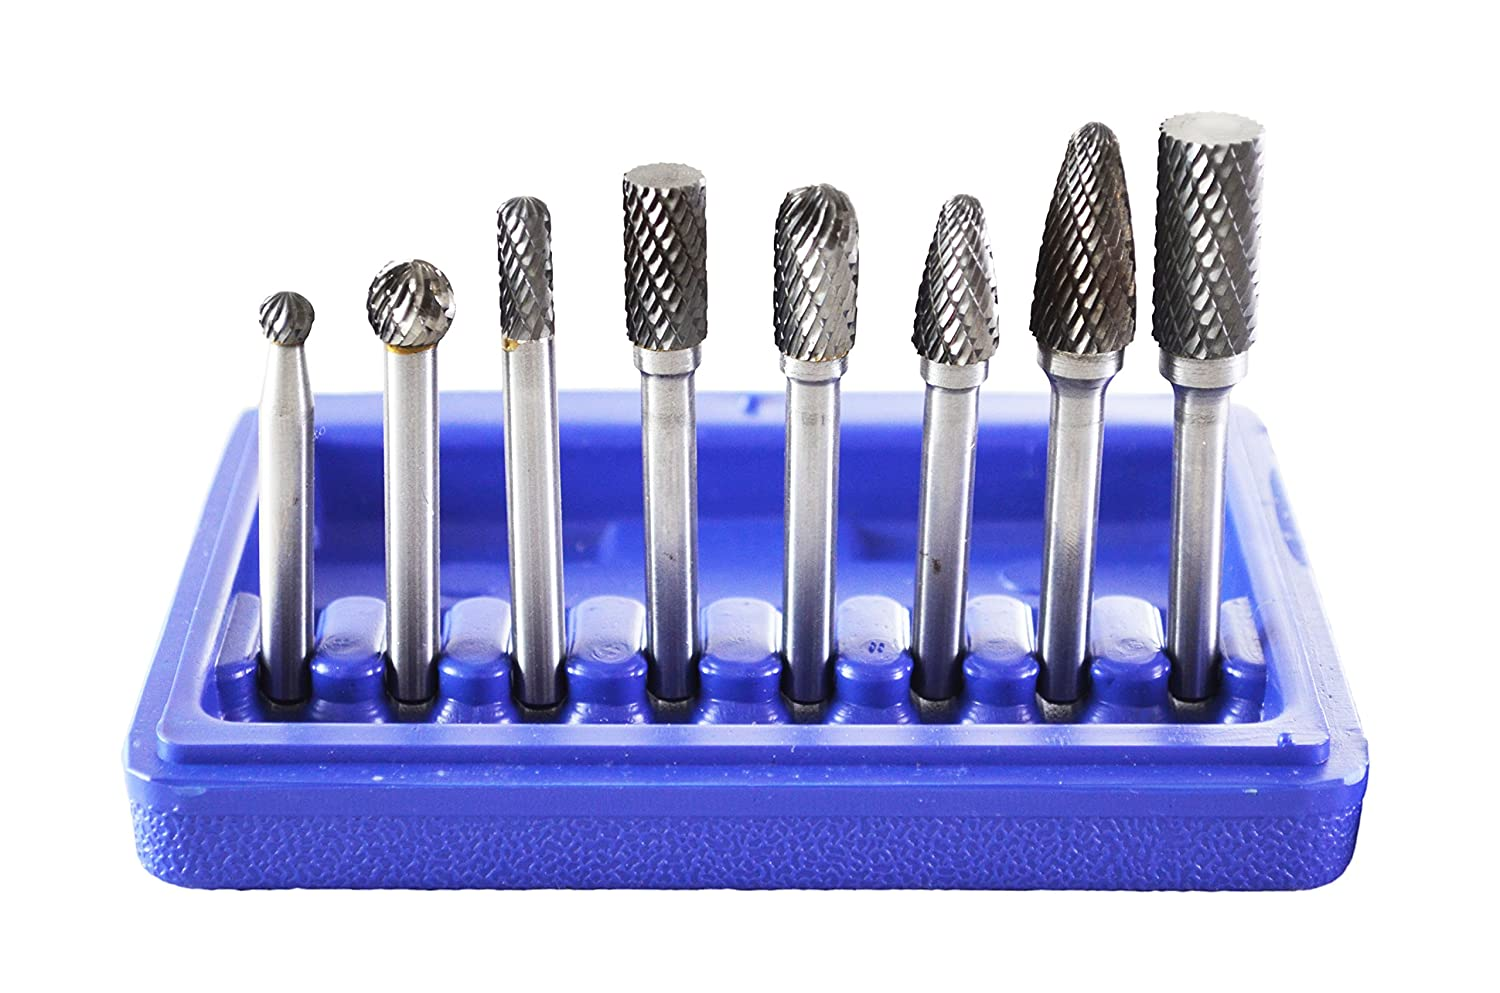 Astro 2181 Double Cut Carbide Rotary Burr Set with 1/4-Inch Shank